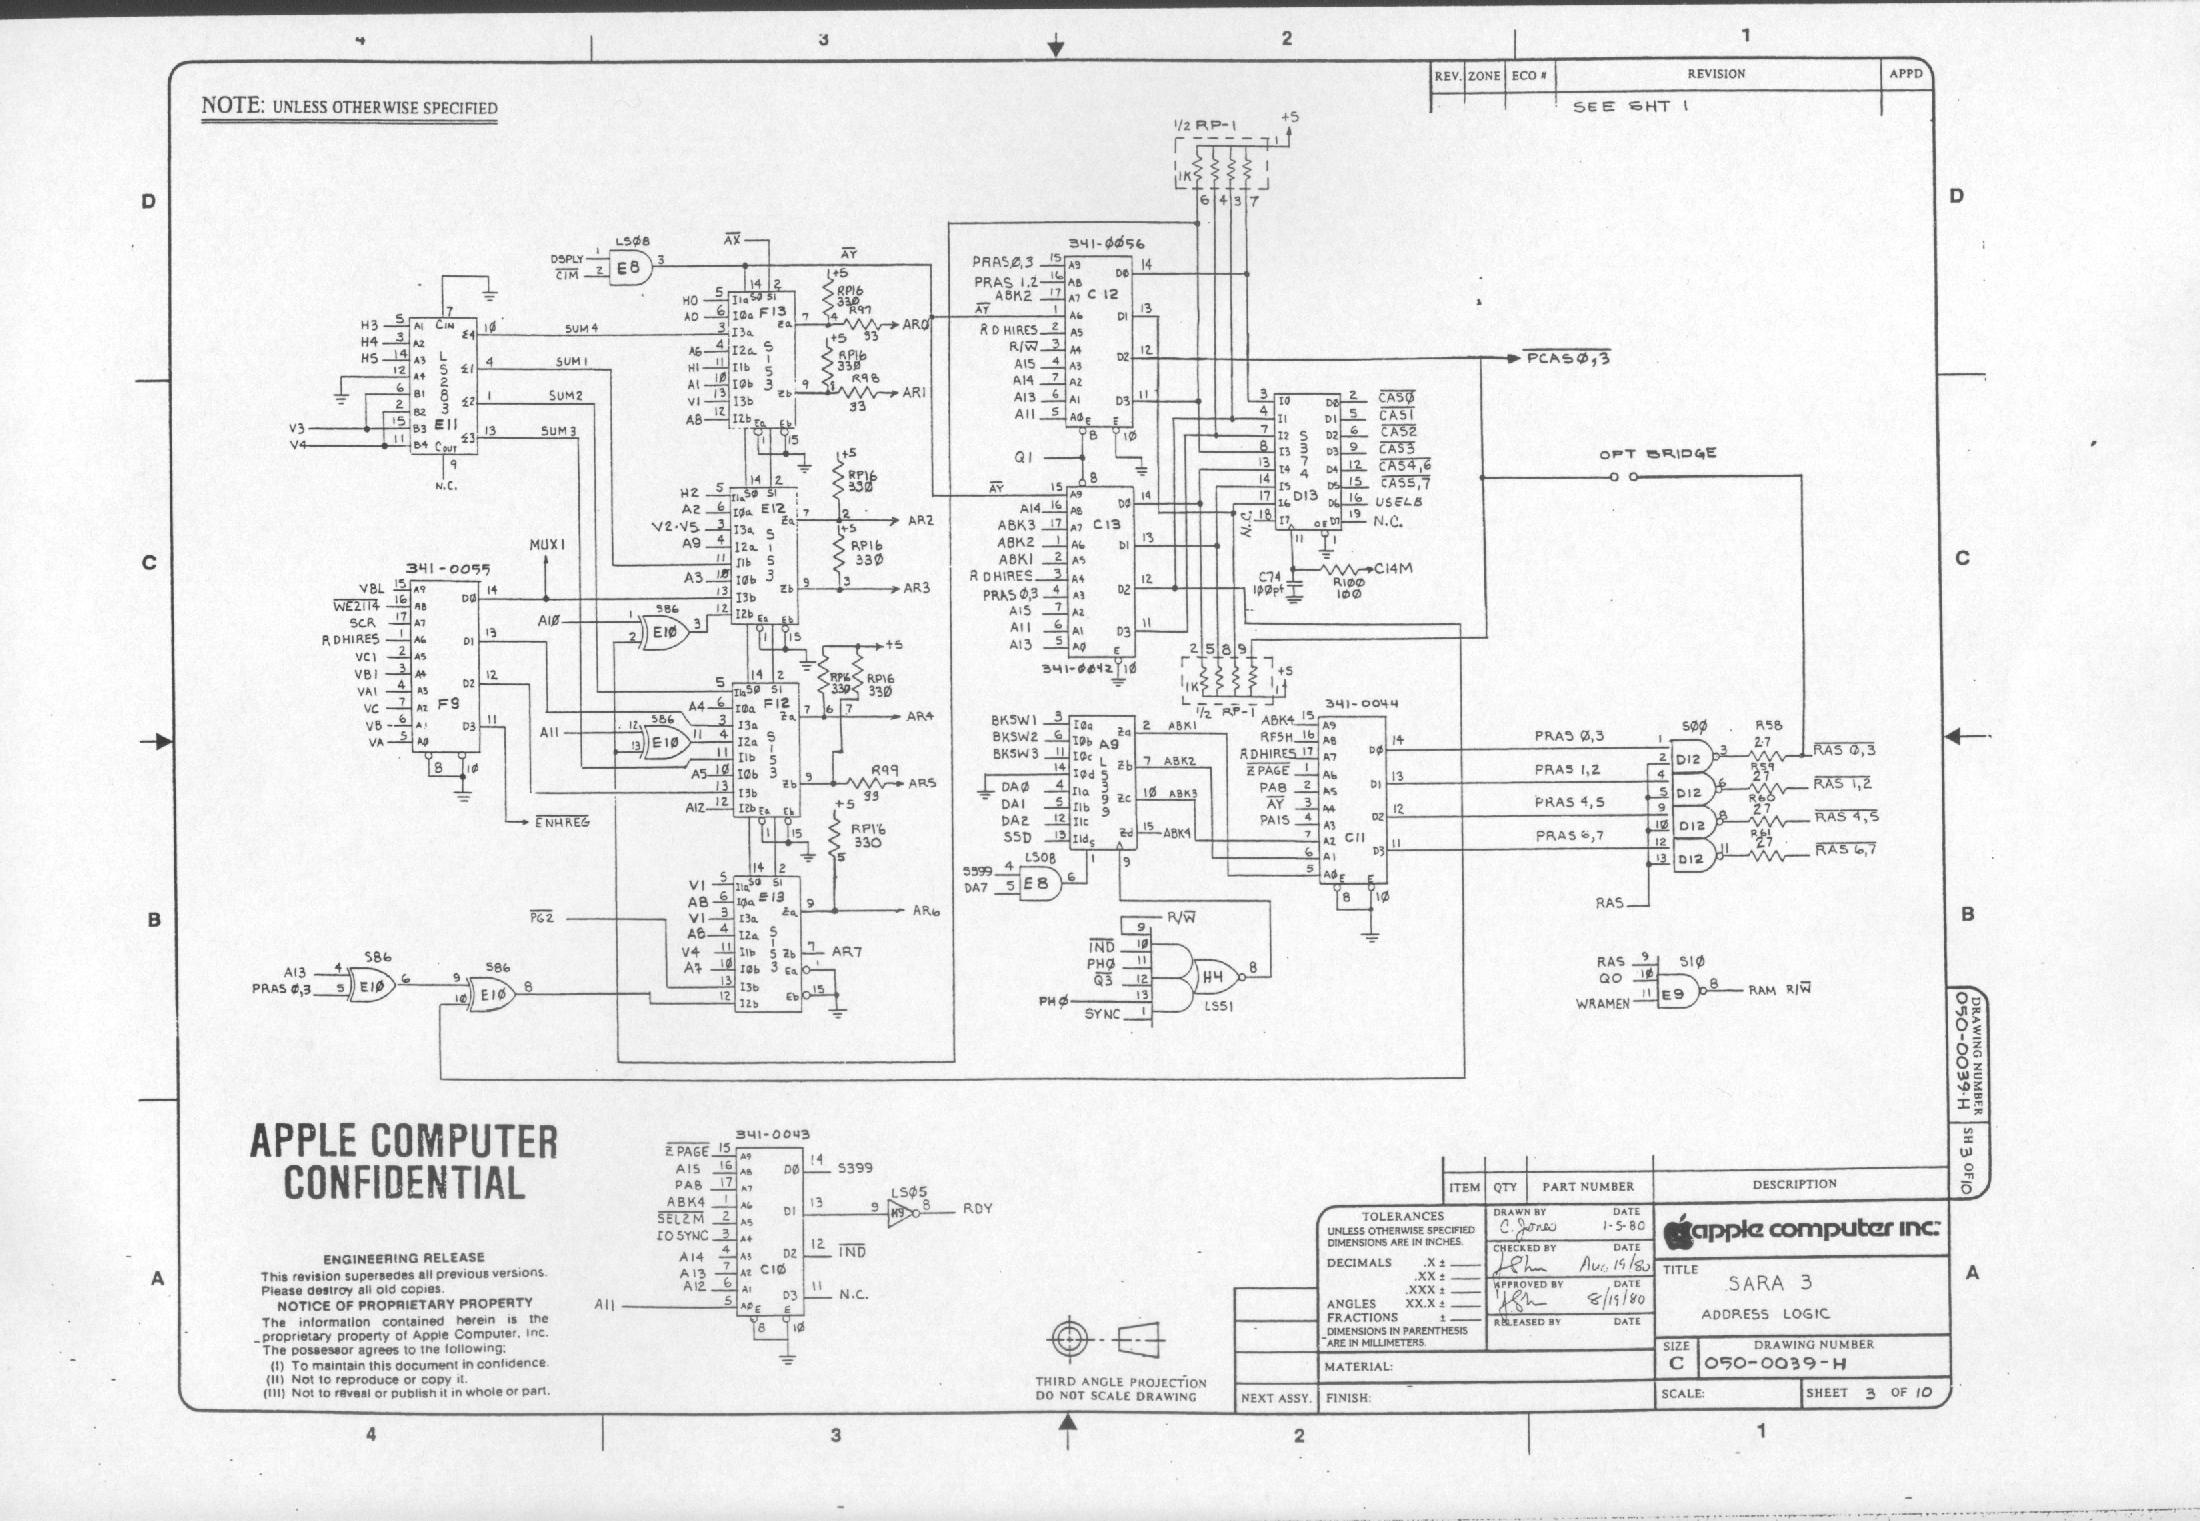 Address Logic apple iii schematic diagrams wiring diagram for apple tv at honlapkeszites.co